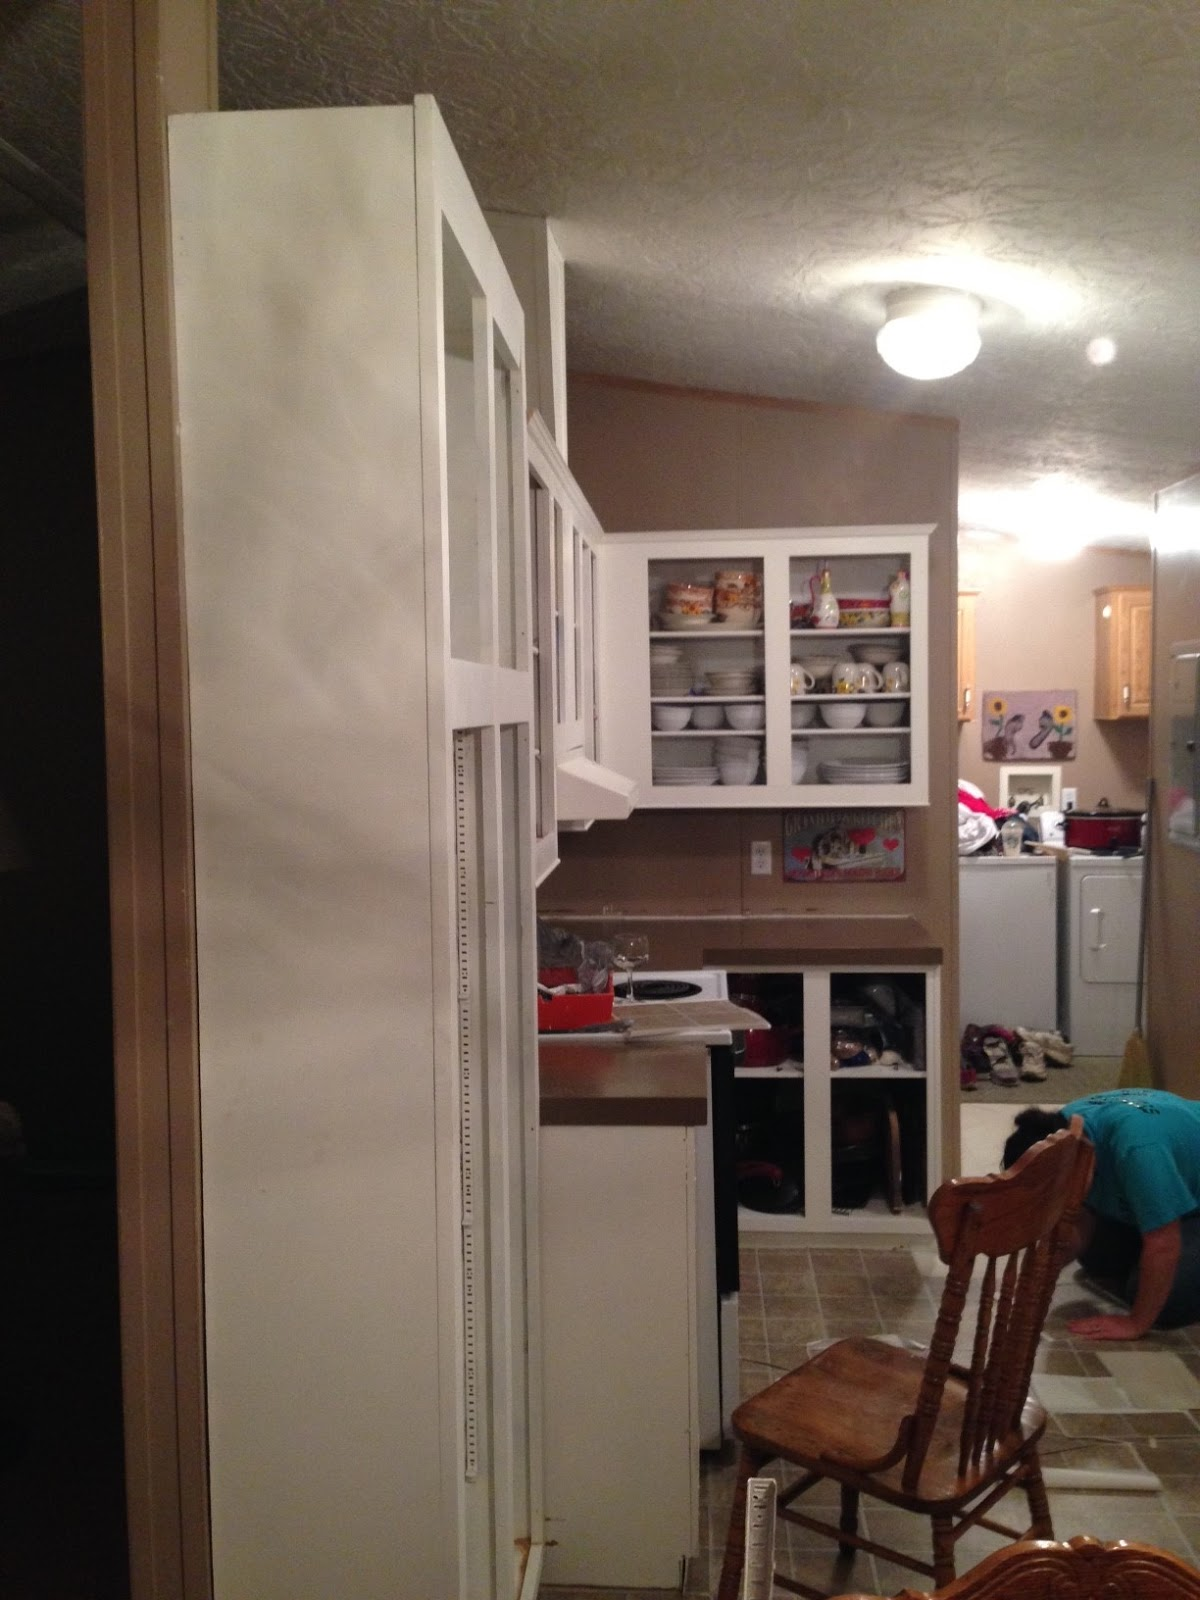 Pantry unit installed